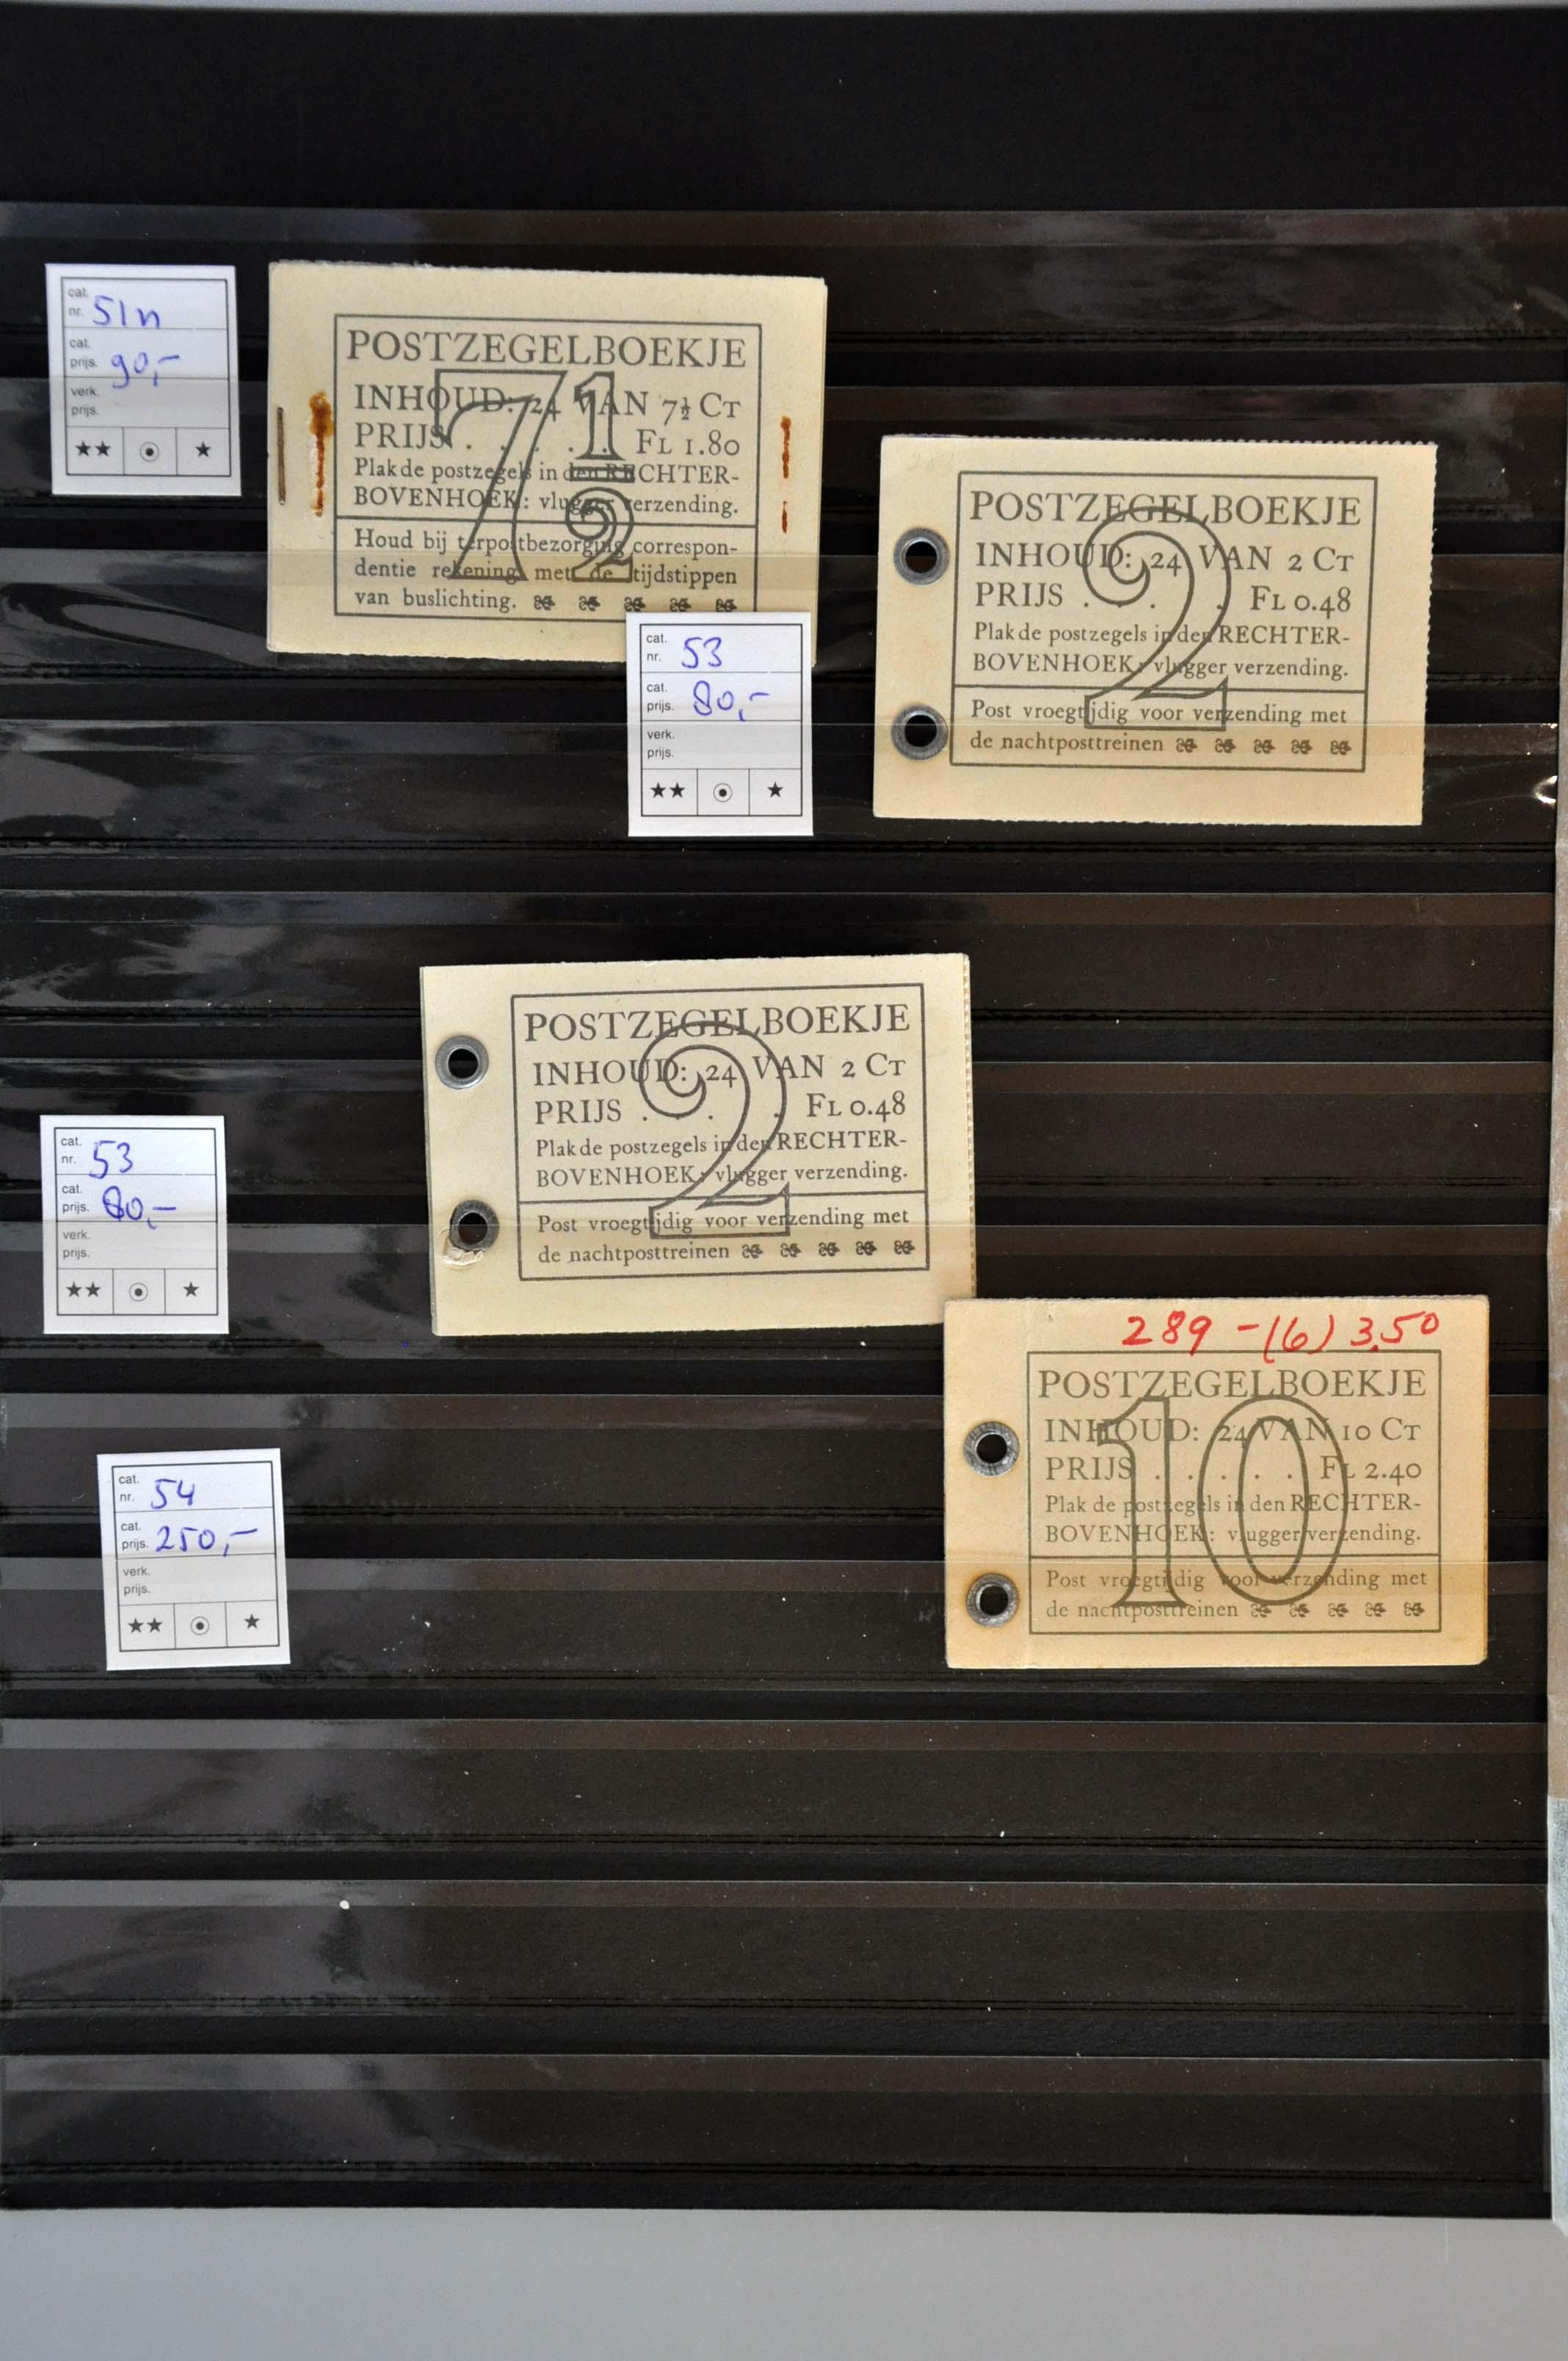 Lot 2709 - Netherlands and former colonies Netherlands -  Corinphila Veilingen Auction 245-246 Day 3 - Netherlands and former colonies - Single lots, Collections and lots, Boxes and literature